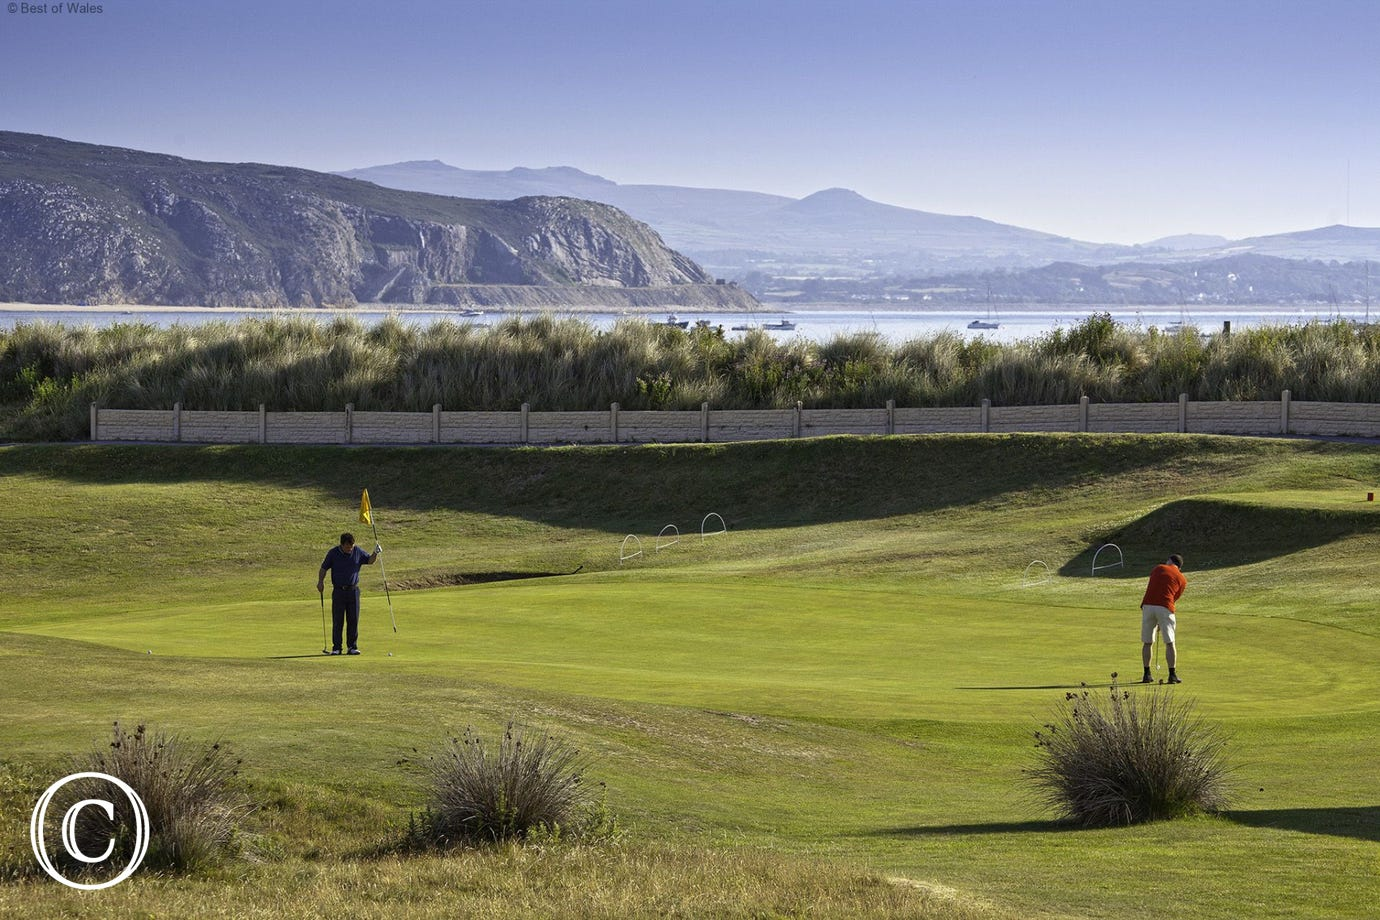 Abersoch Golf Club (8 miles) also offers and 18 hole golf course